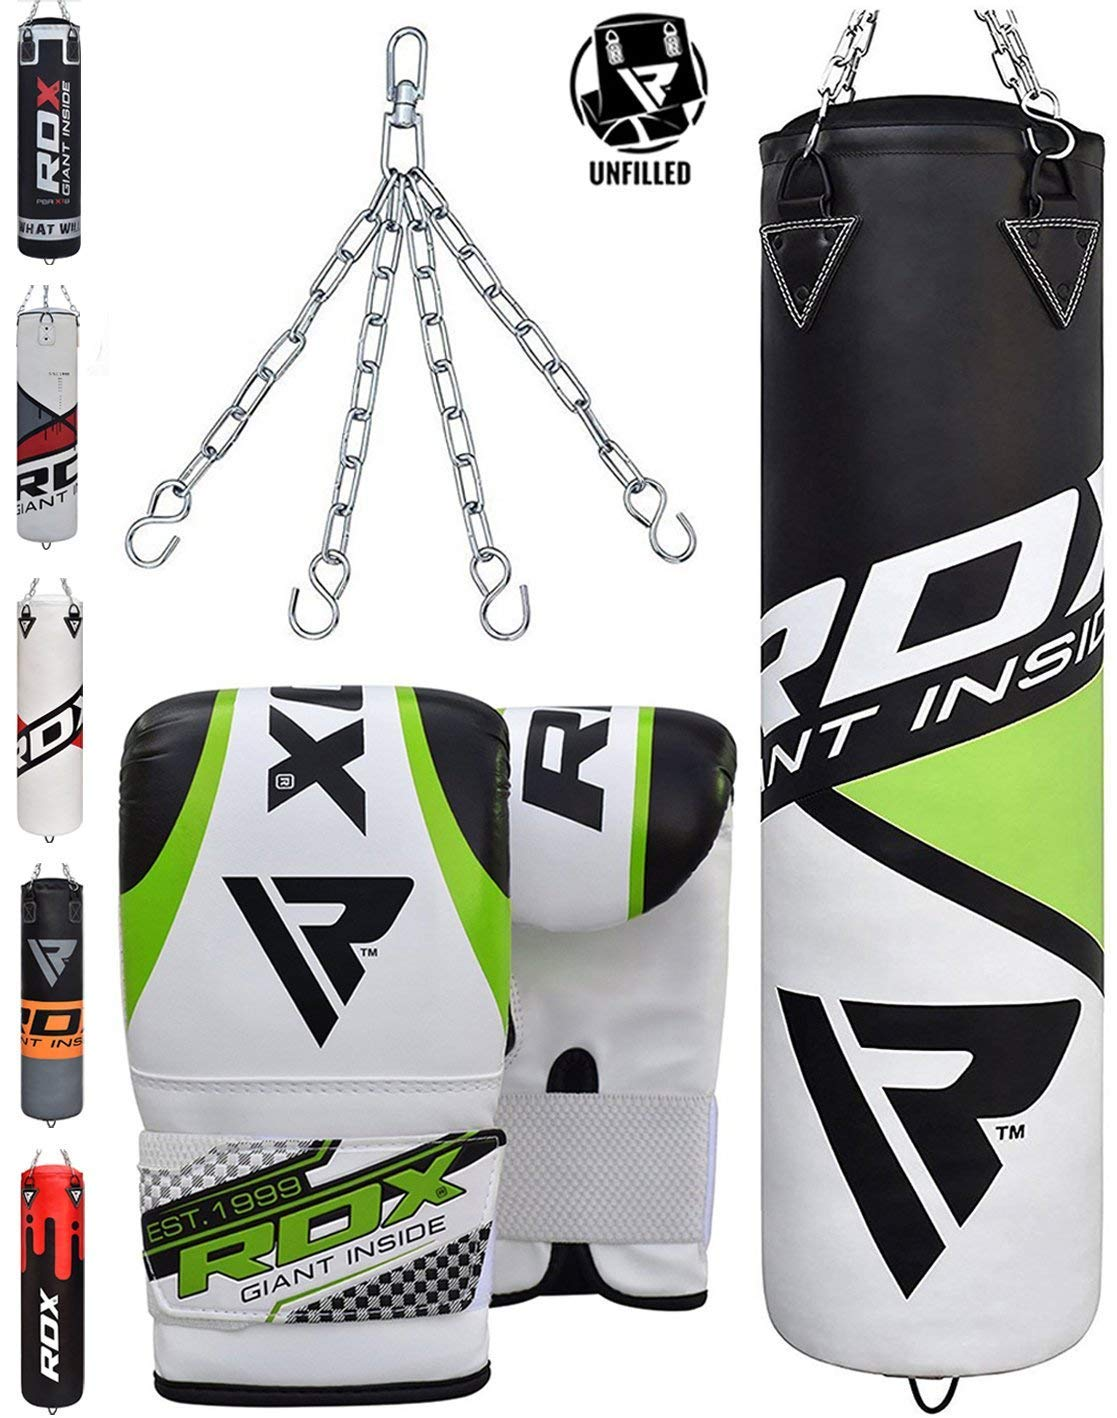 RDX Punching Bag UNFILLED Set Muay Thai MMA Training Gloves with Punch Mitts Hanging Chain Great for Kick Boxing Martial Arts Available in 4FT 5FT